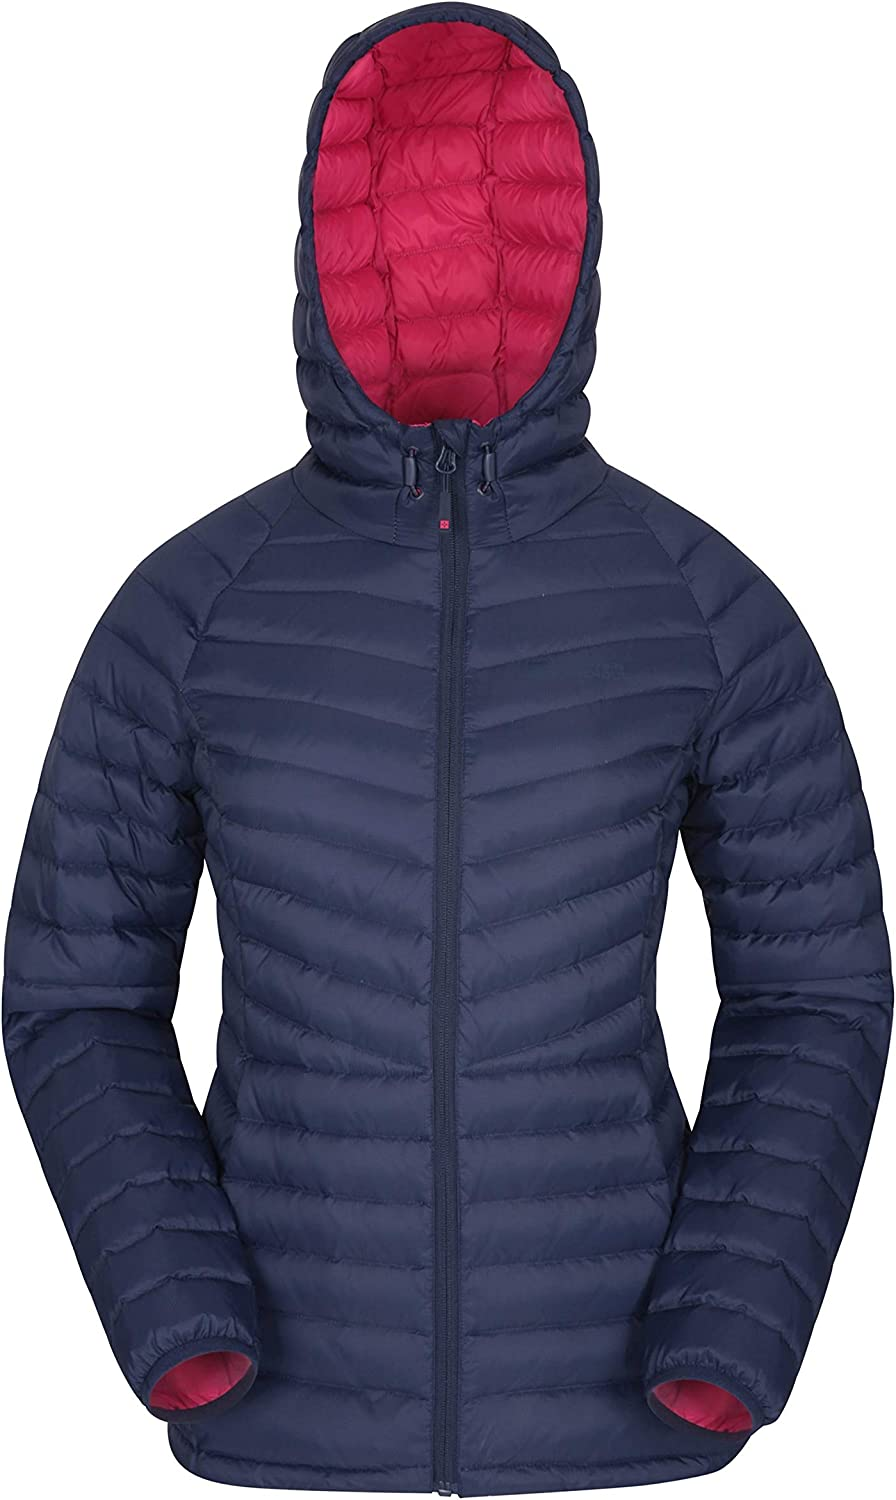 Adjustable Water Resistant Ladies Winter Coat Insulated Puffer Jacket for Winter Travelling /& Daily Use Mountain Warehouse Skyline Womens Hydrophobic Down Jacket